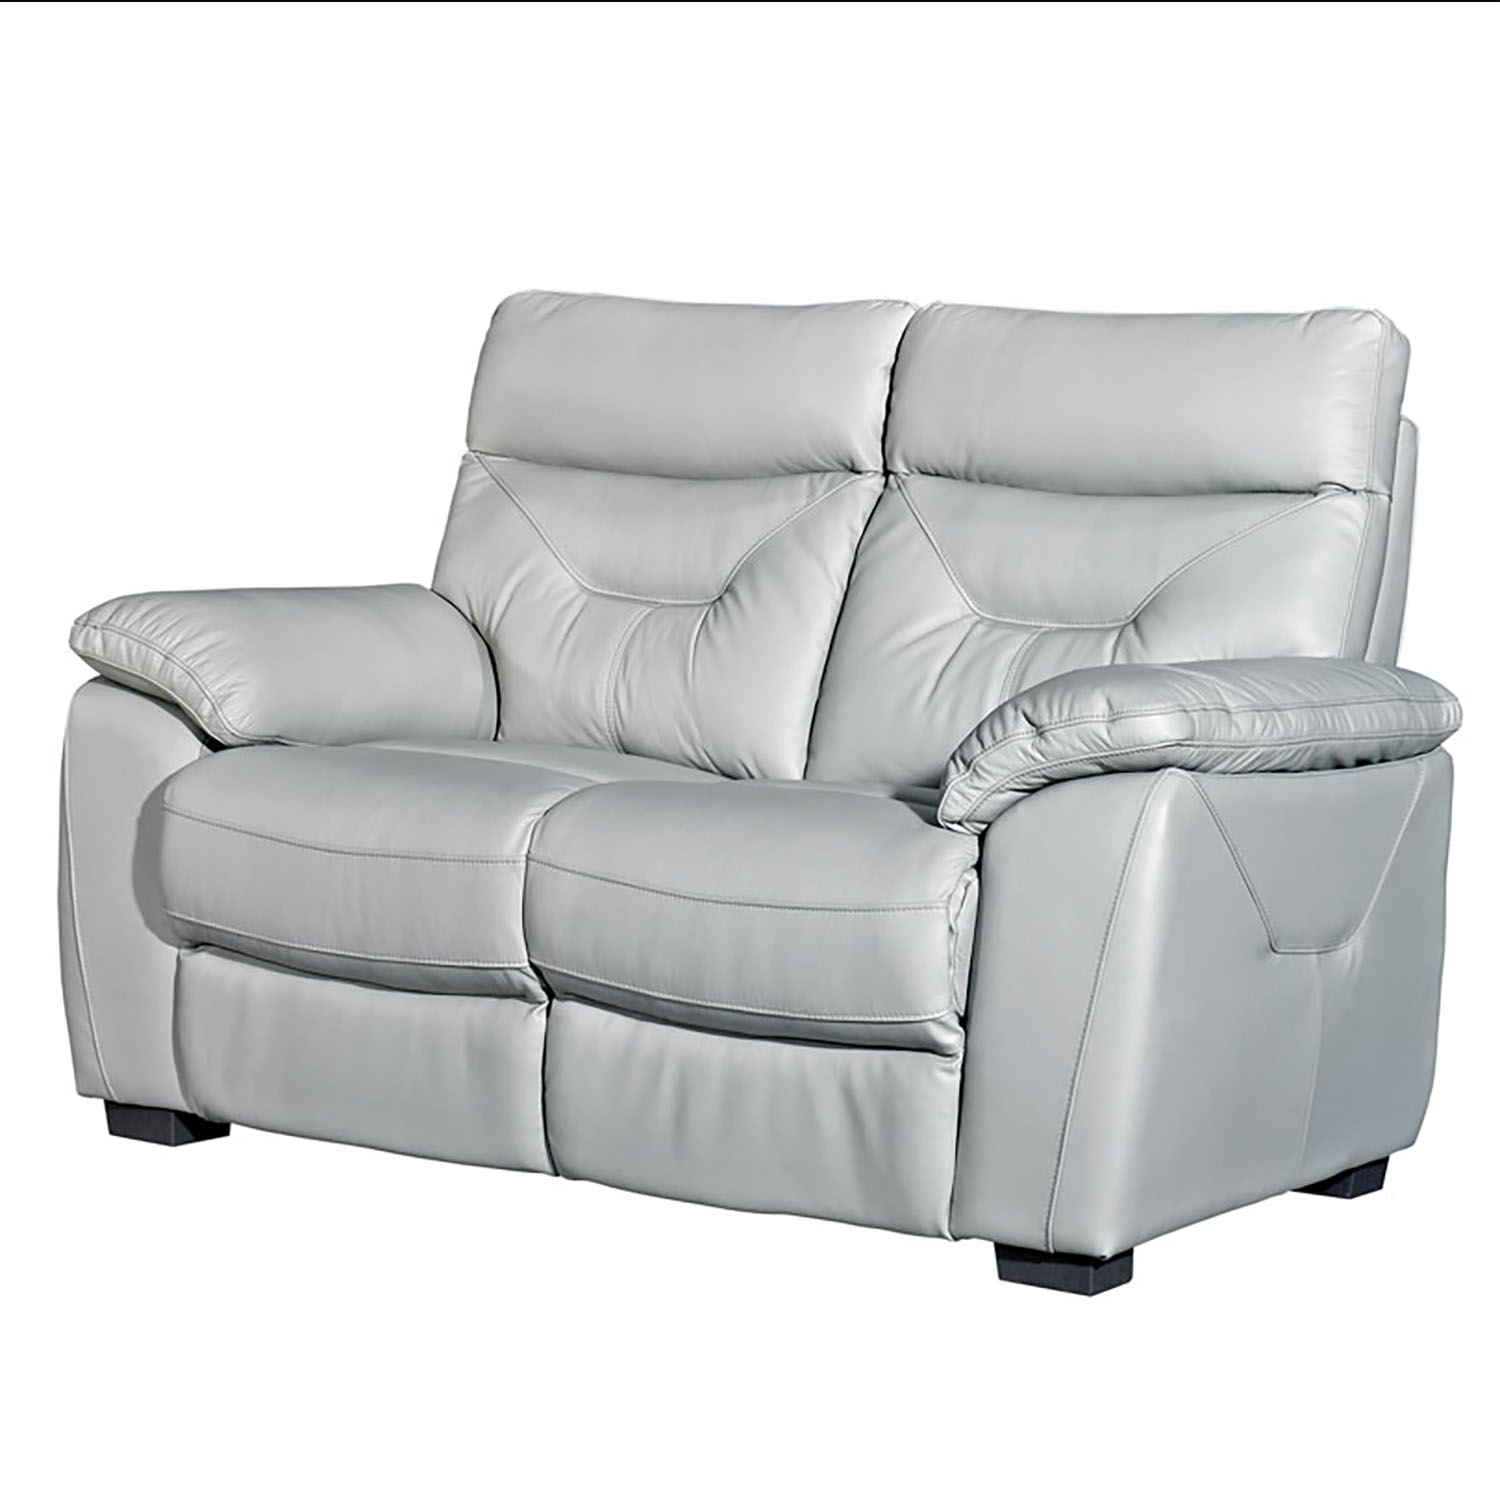 Camo 2 Seater Recliner - Putty